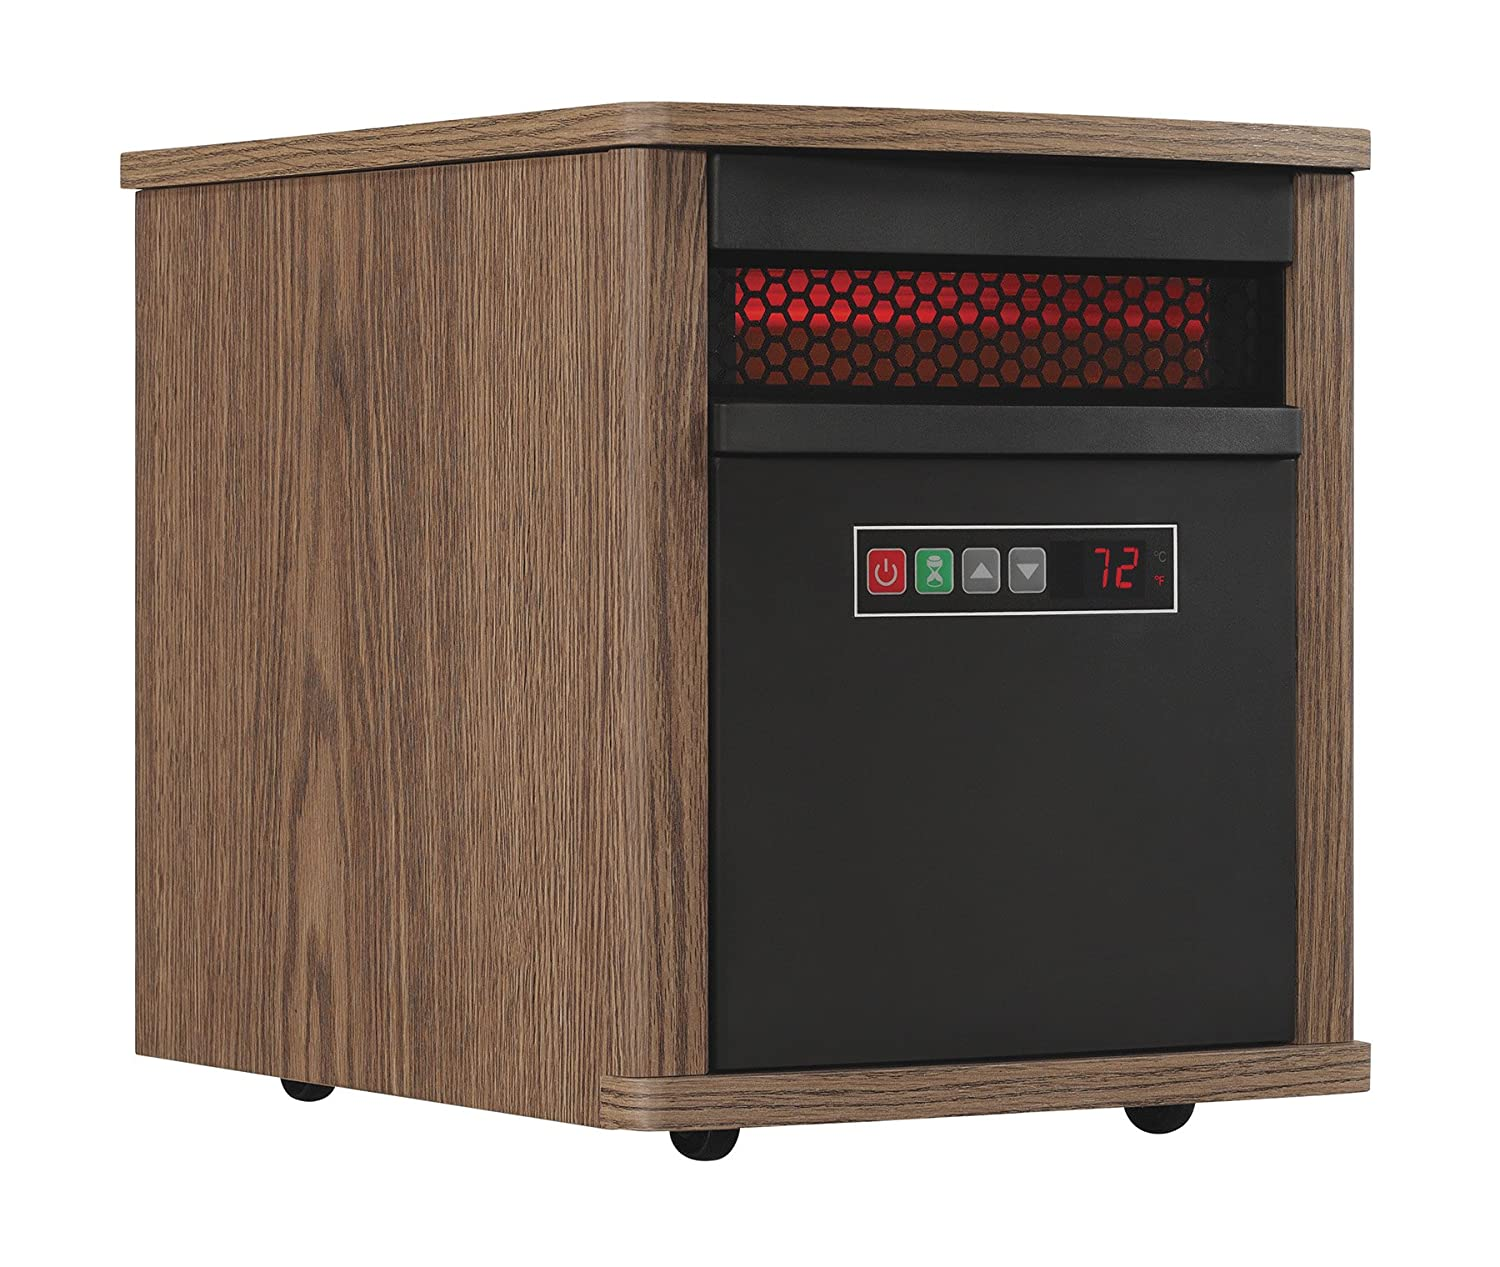 Duraflame Electric Portable Infrared Quartz Space Heater, Dark Oak